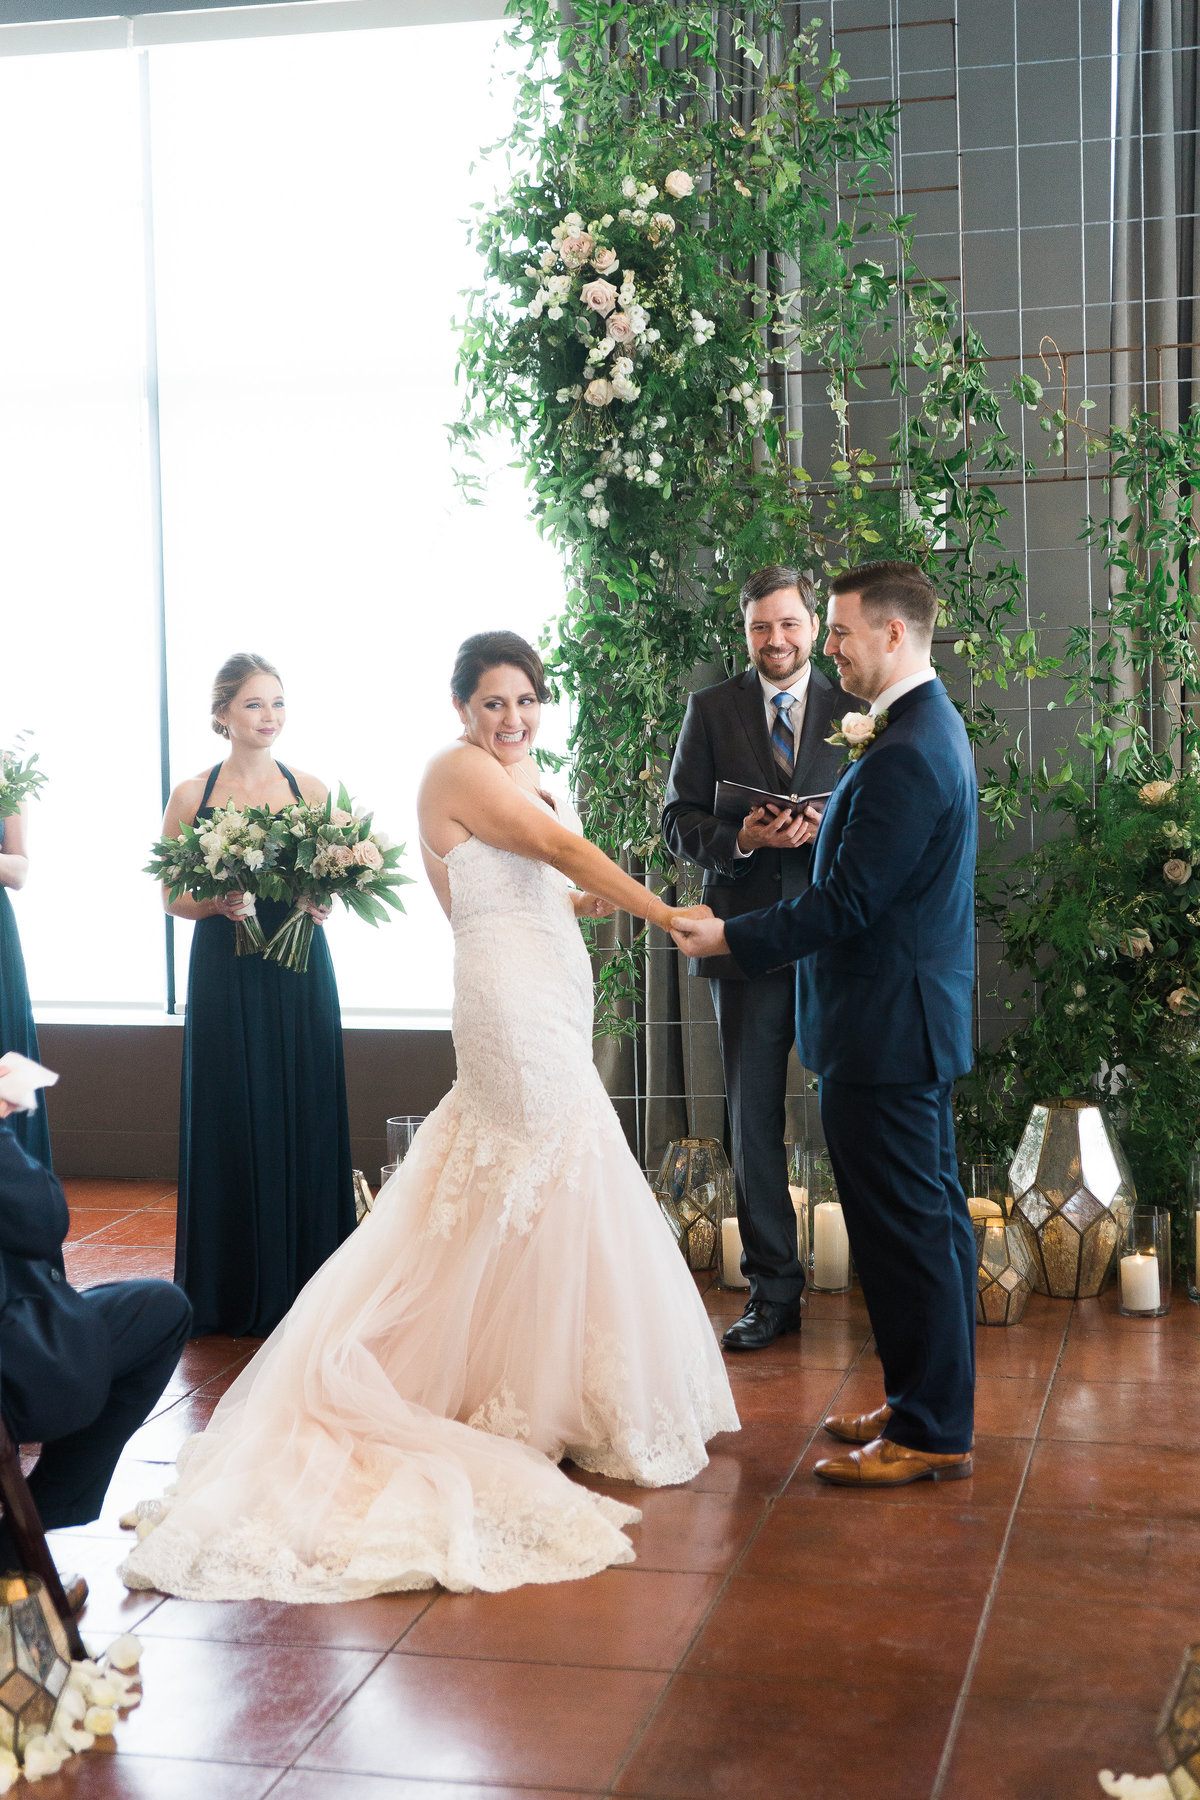 Intimate wedding at downtown venue